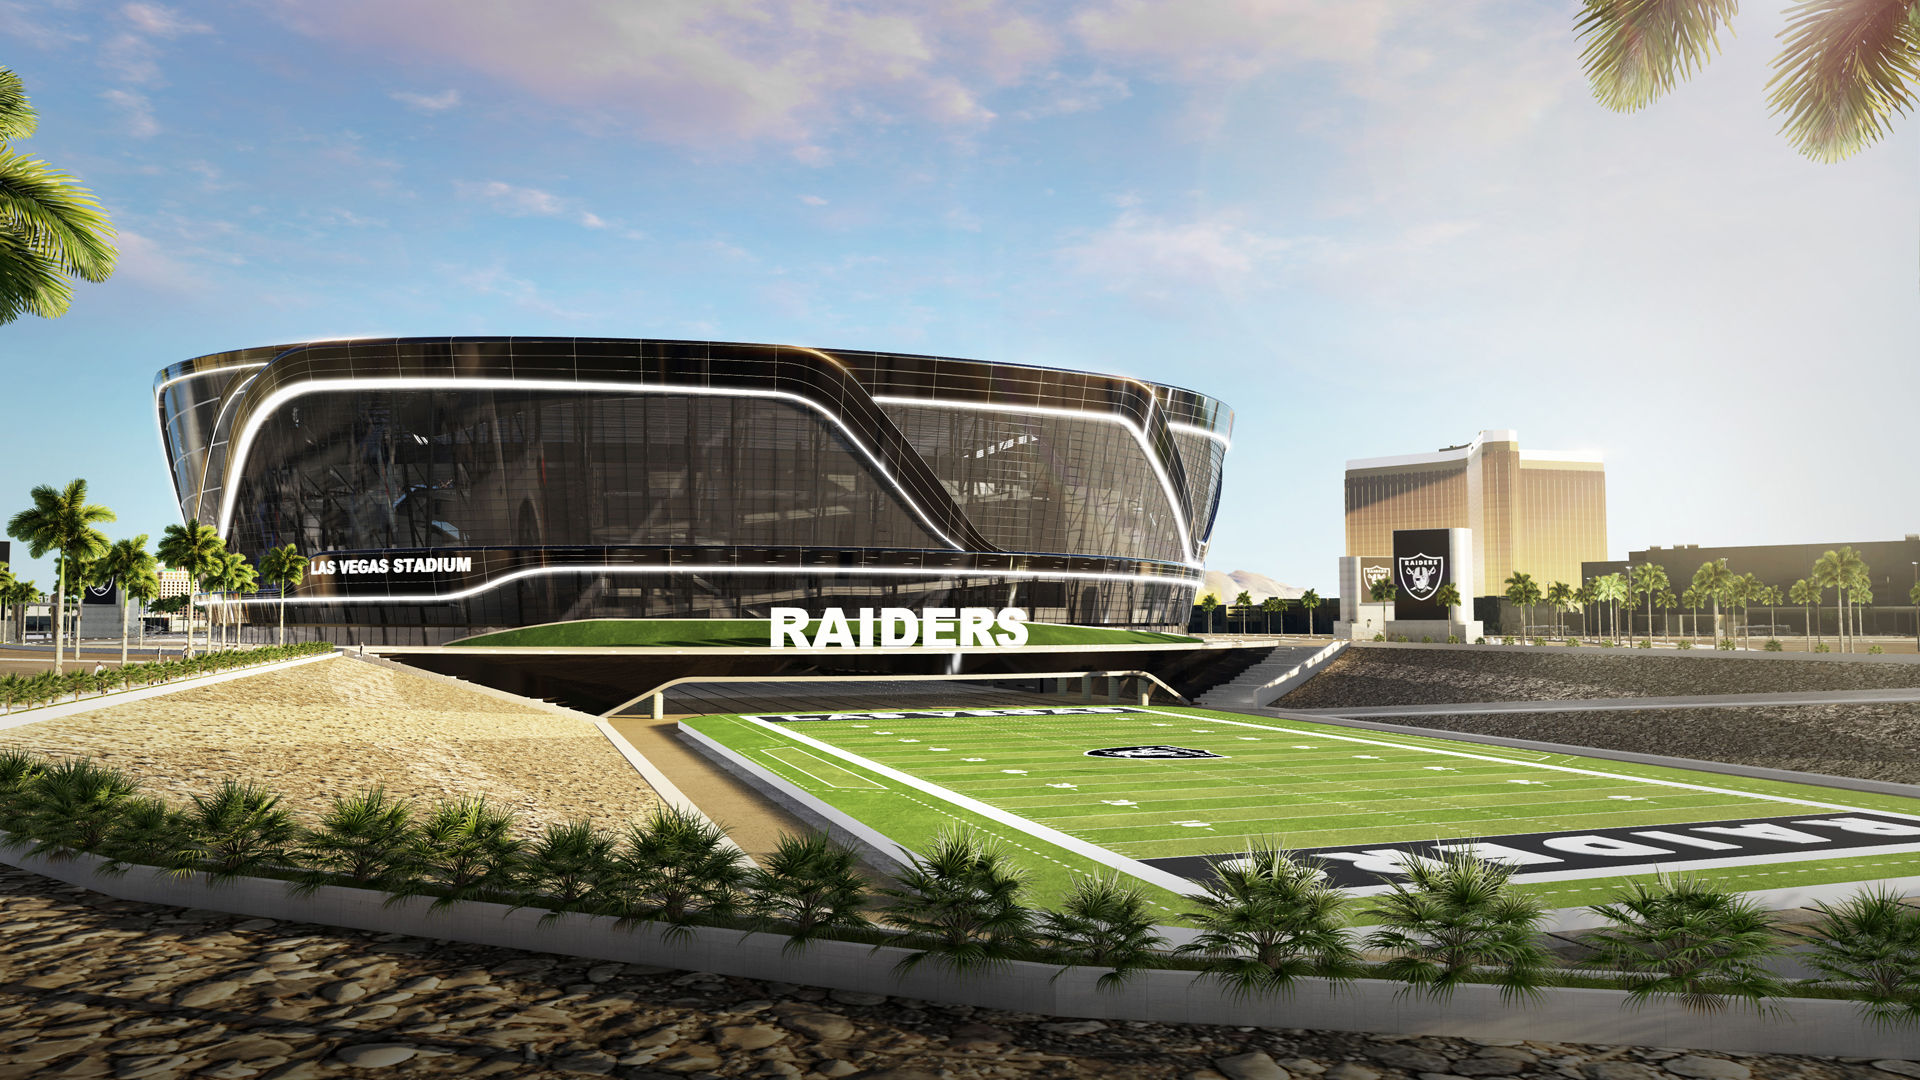 A rendering of the proposed Las Vegas Stadium for the Raiders NFL team.